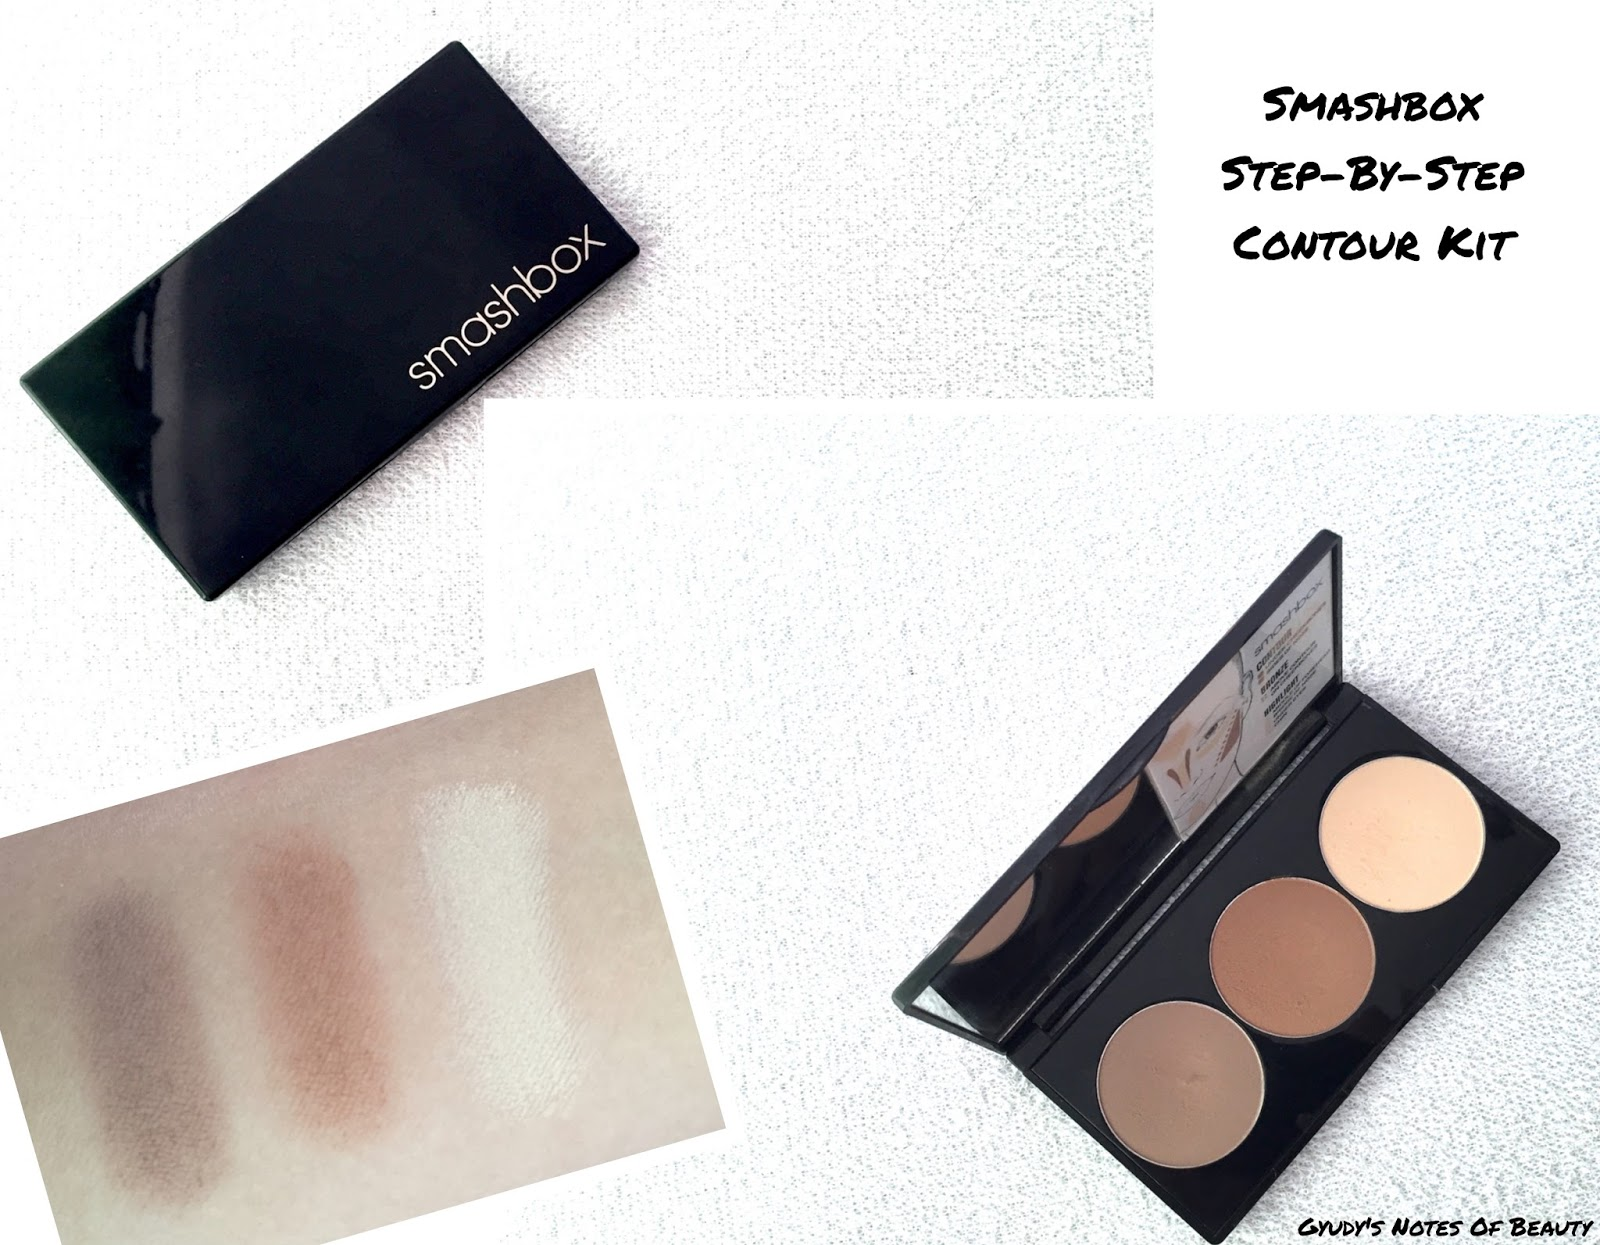 elf contour kit swatches. smasbox step-by-step contour kit review and swatches elf s